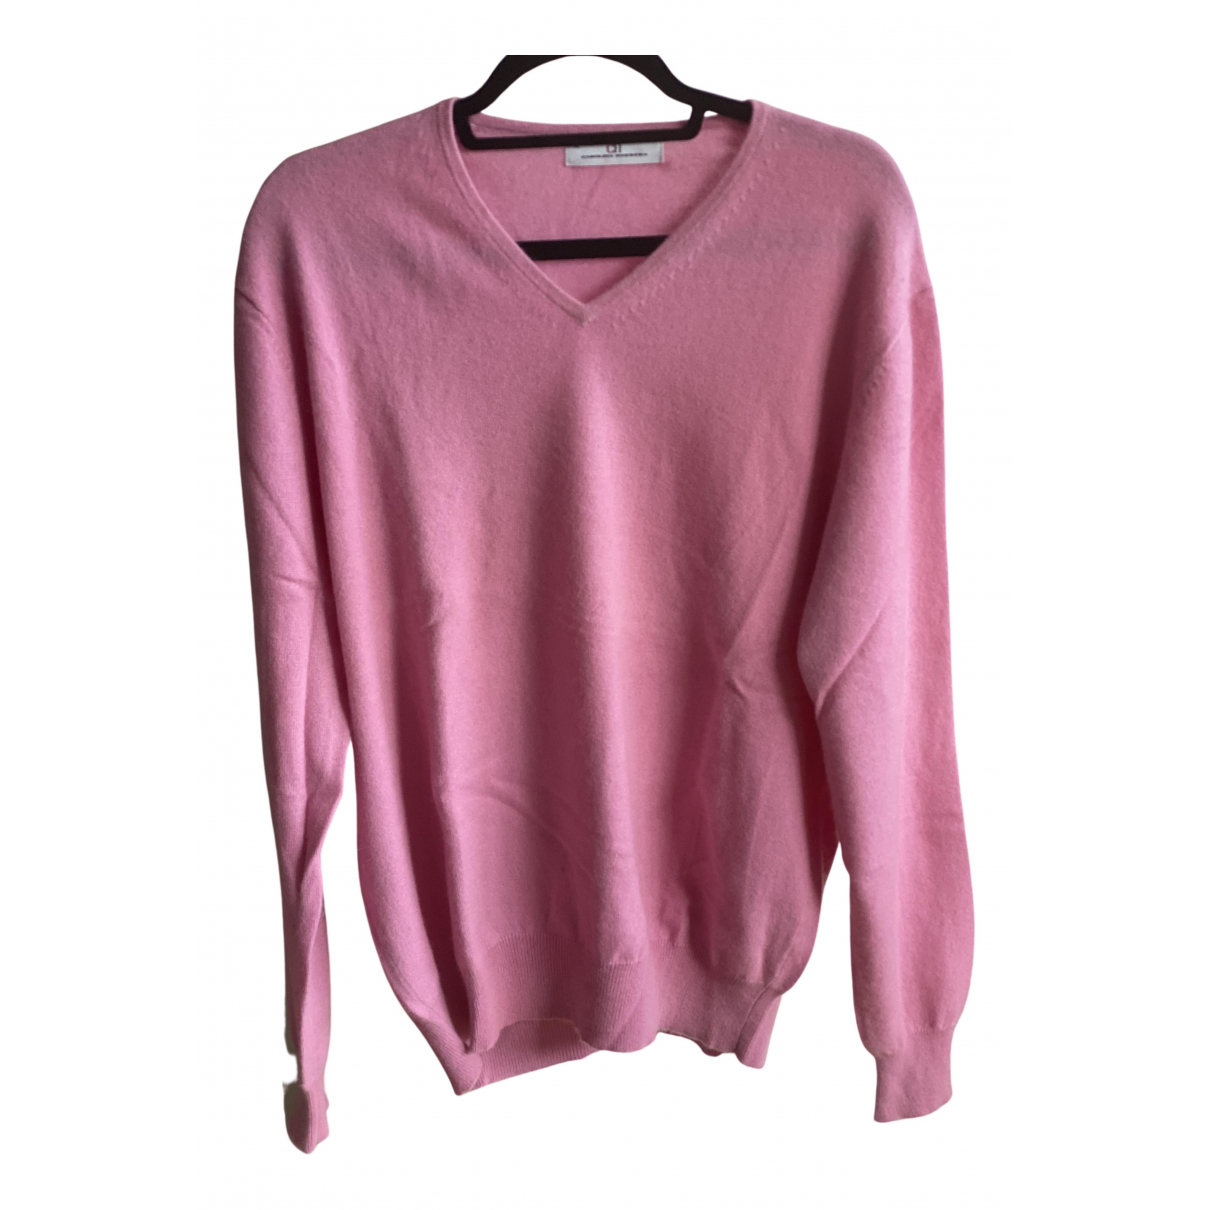 Carolina Herrera N Pink Cashmere Knitwear & Sweatshirts for Men XL International